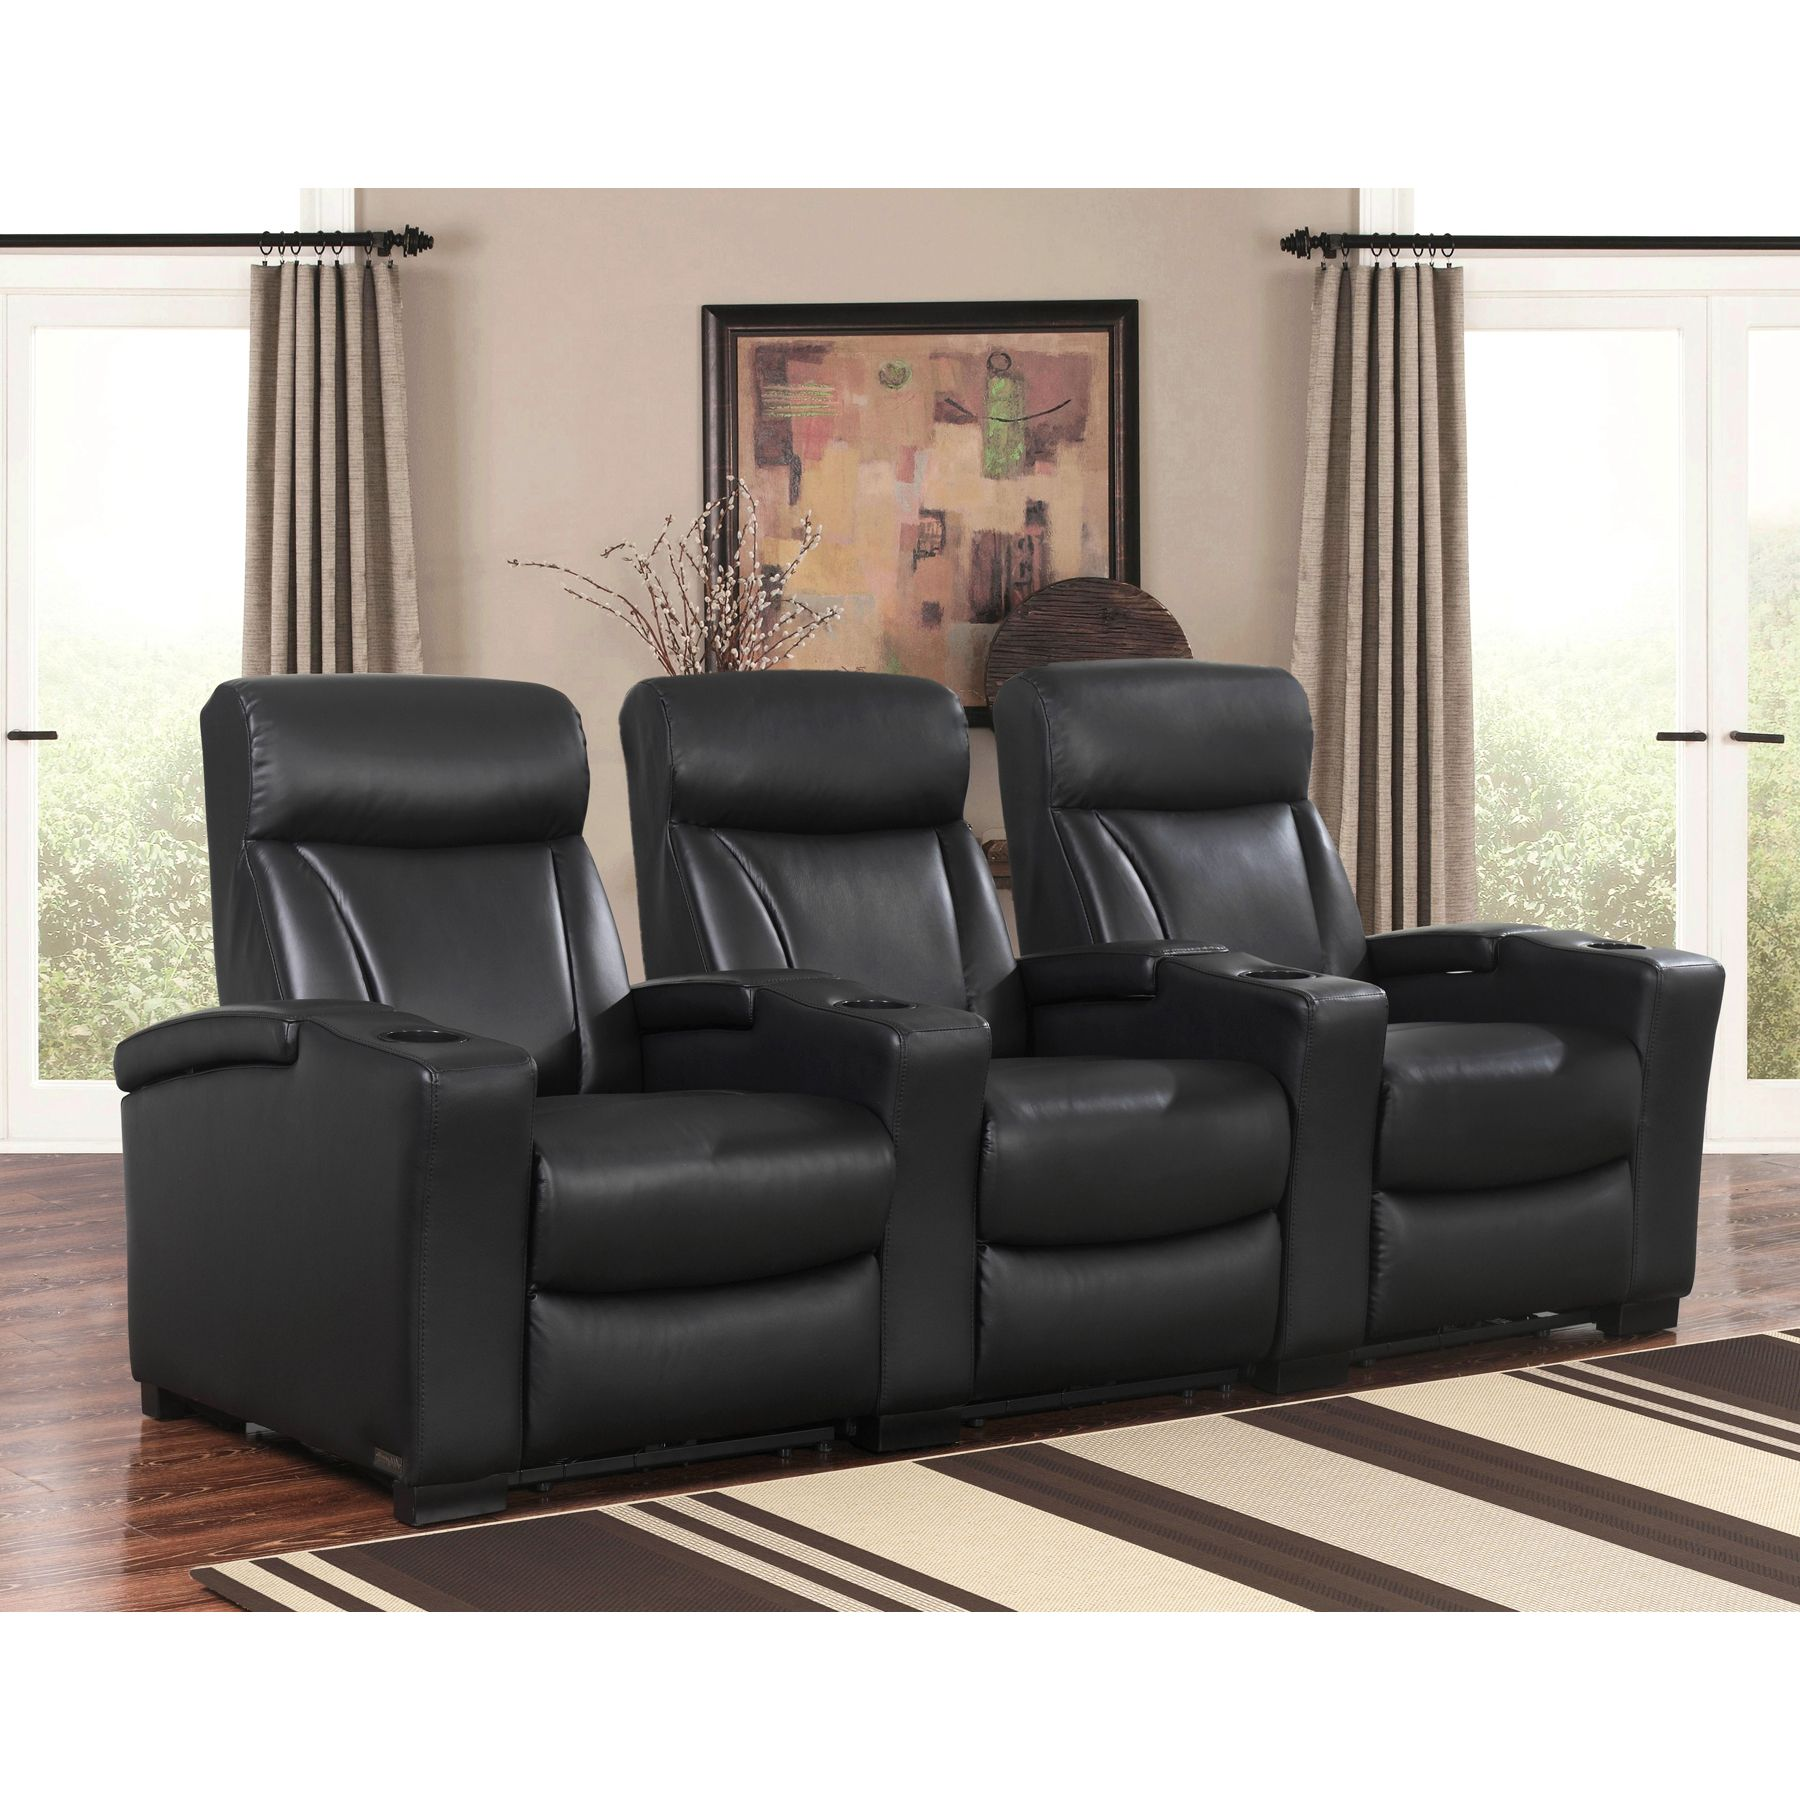 Romano 3-piece Top Grain Leather Power Media Recliners Living ...